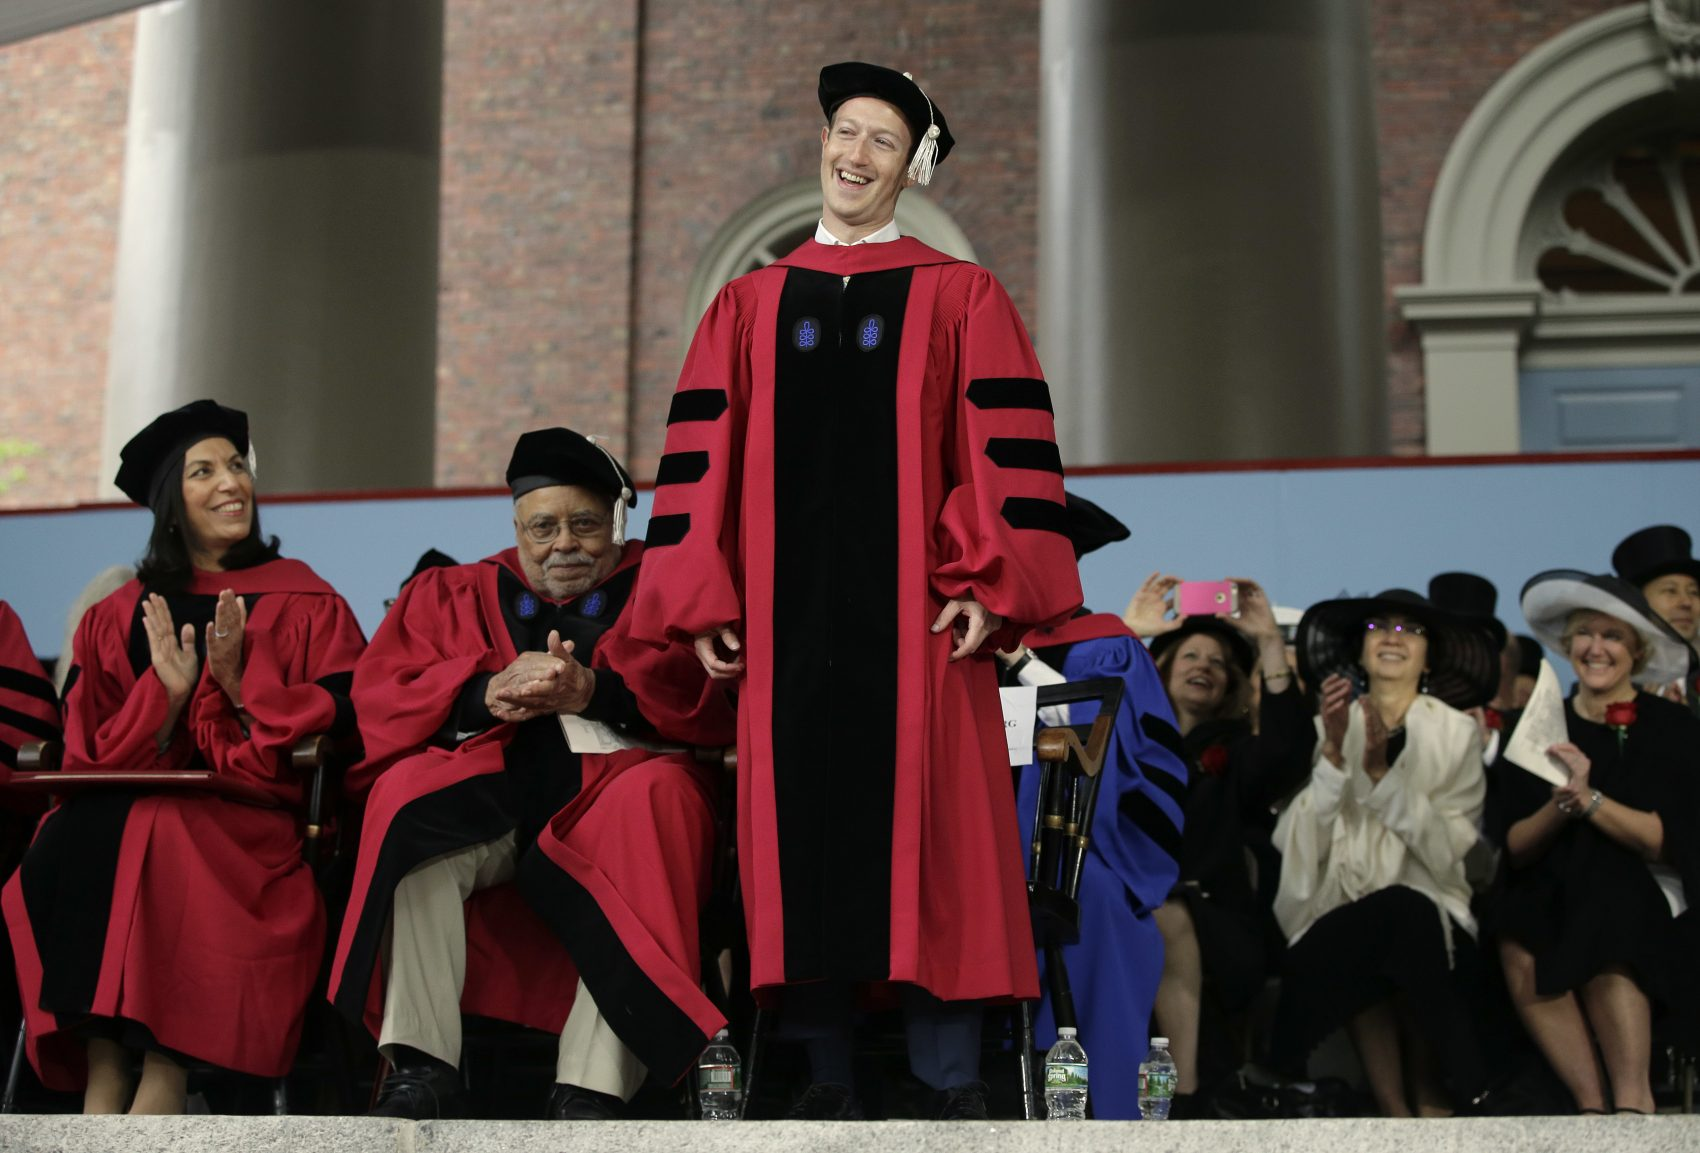 Facebook CEO and Harvard dropout Mark Zuckerberg, center, smiles as he is introduced before being presented with an honorary Doctor of Laws degree during Harvard University commencement exercises Thursday. (Steven Senne/AP)